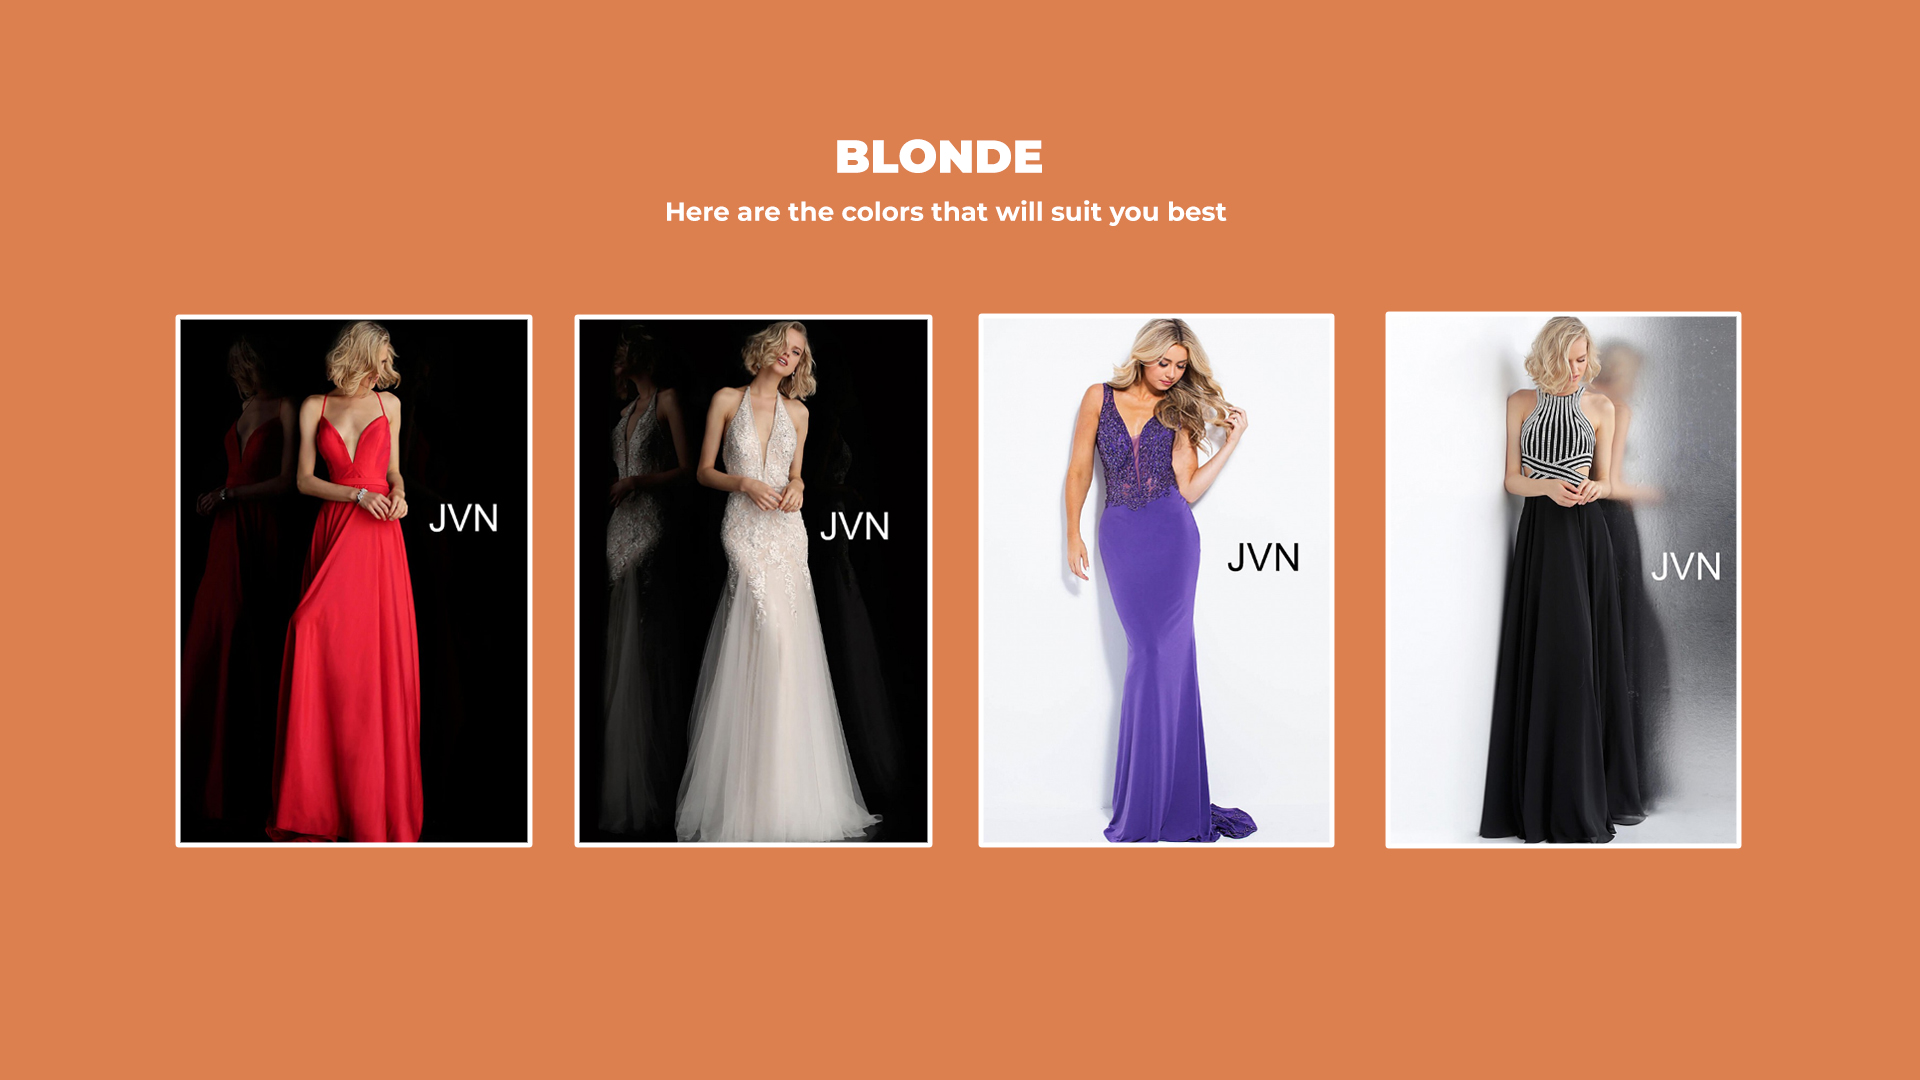 How To Choose The Color Of Your Prom Dress